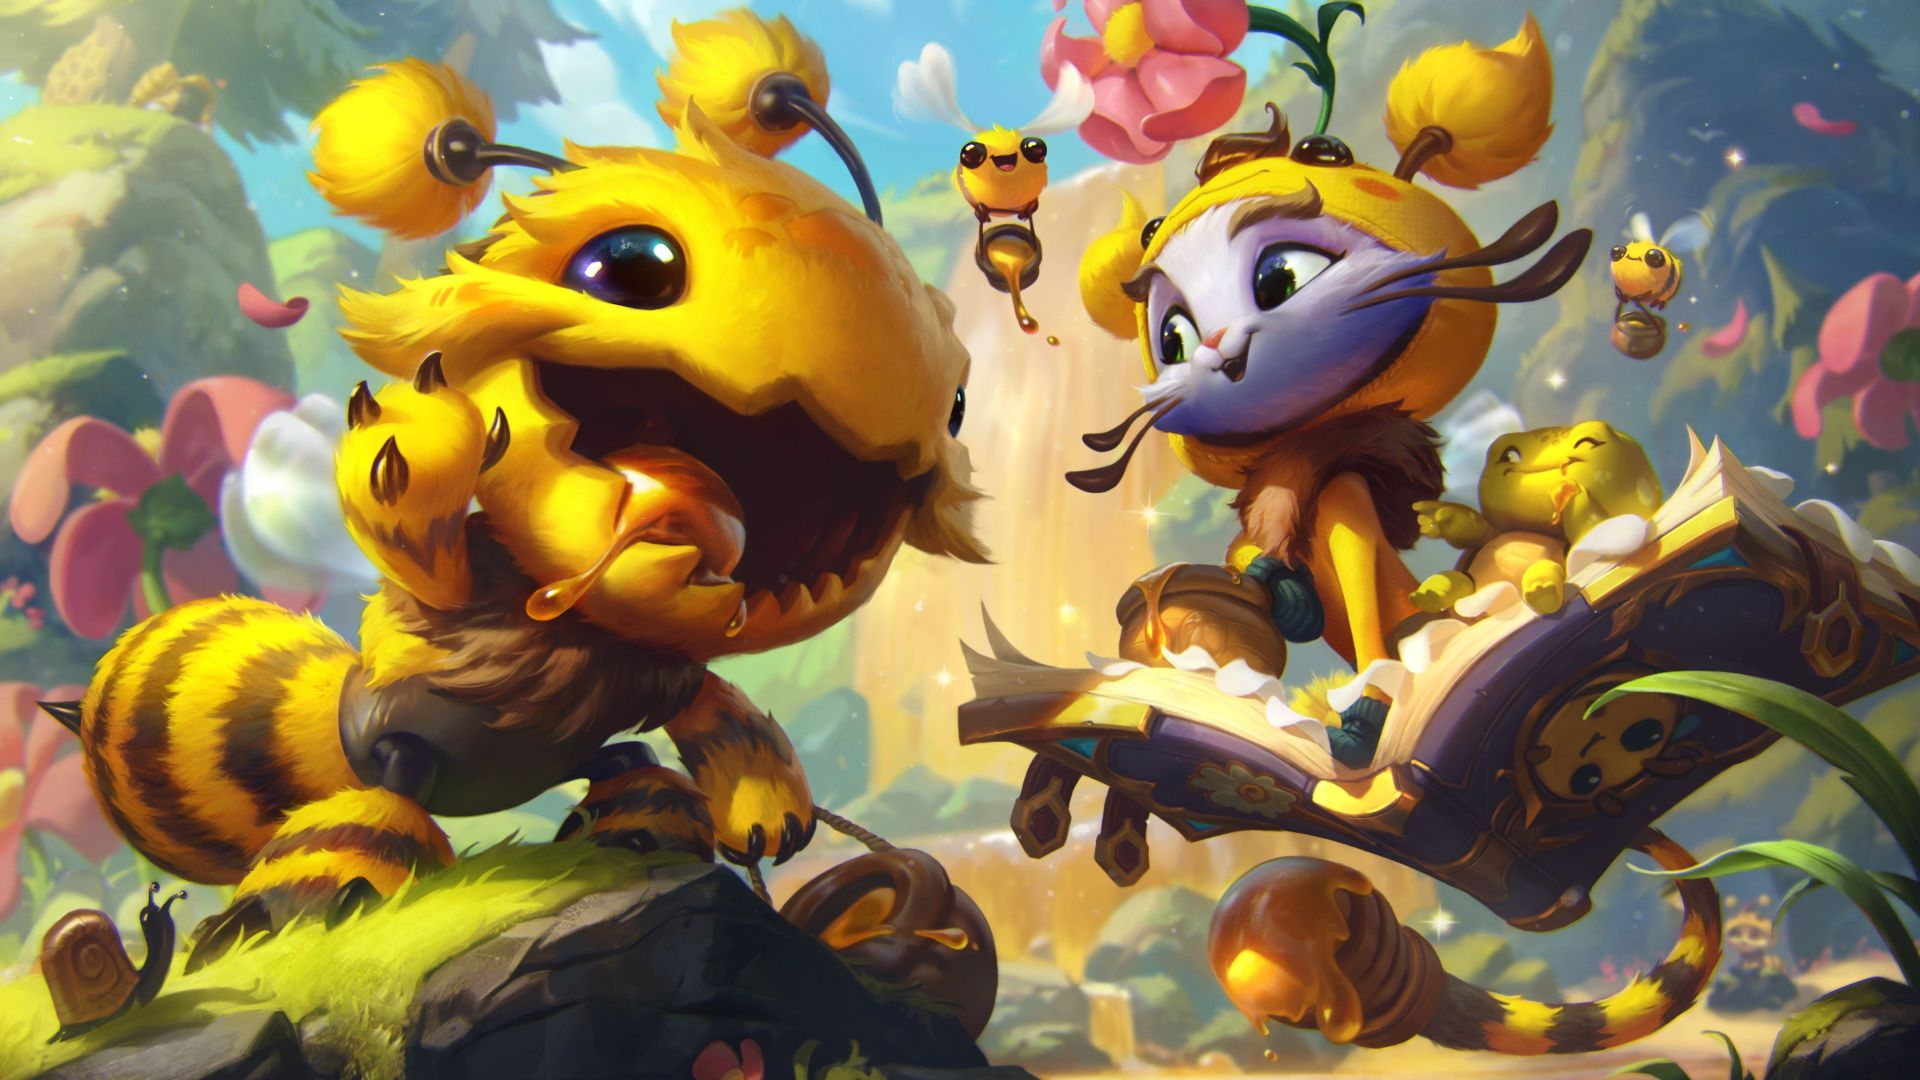 League of Legends patch 11.5 notes – Bee themed skins, Twitch, Seraphine, item changes